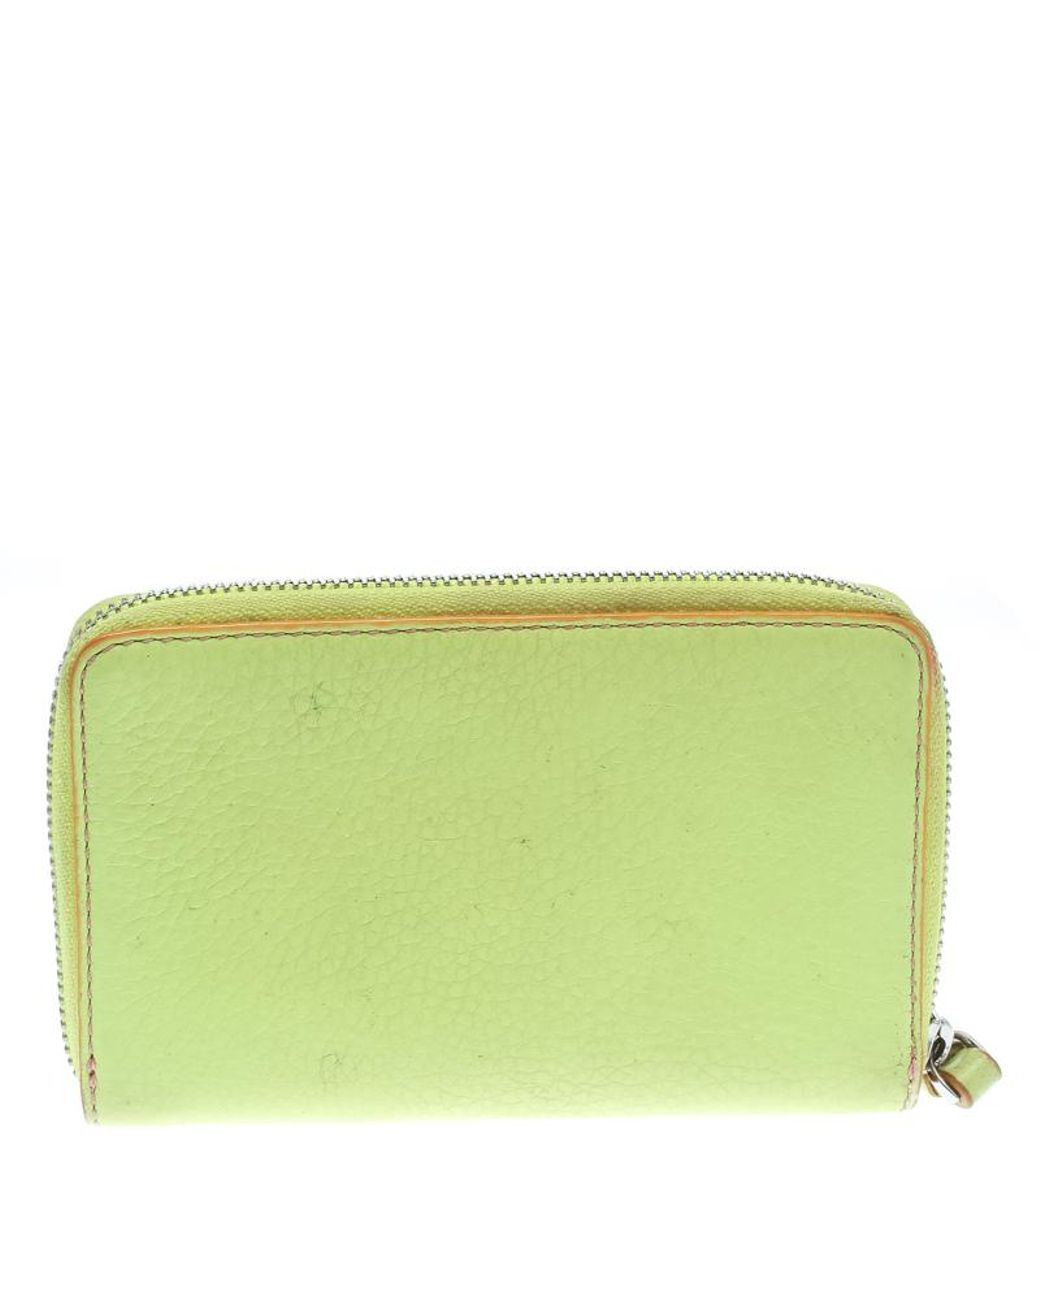 8cfef46a6e20 Marc By Marc Jacobs Lime Green/peach Pink Leather Zip Around Wallet in  Green - Lyst